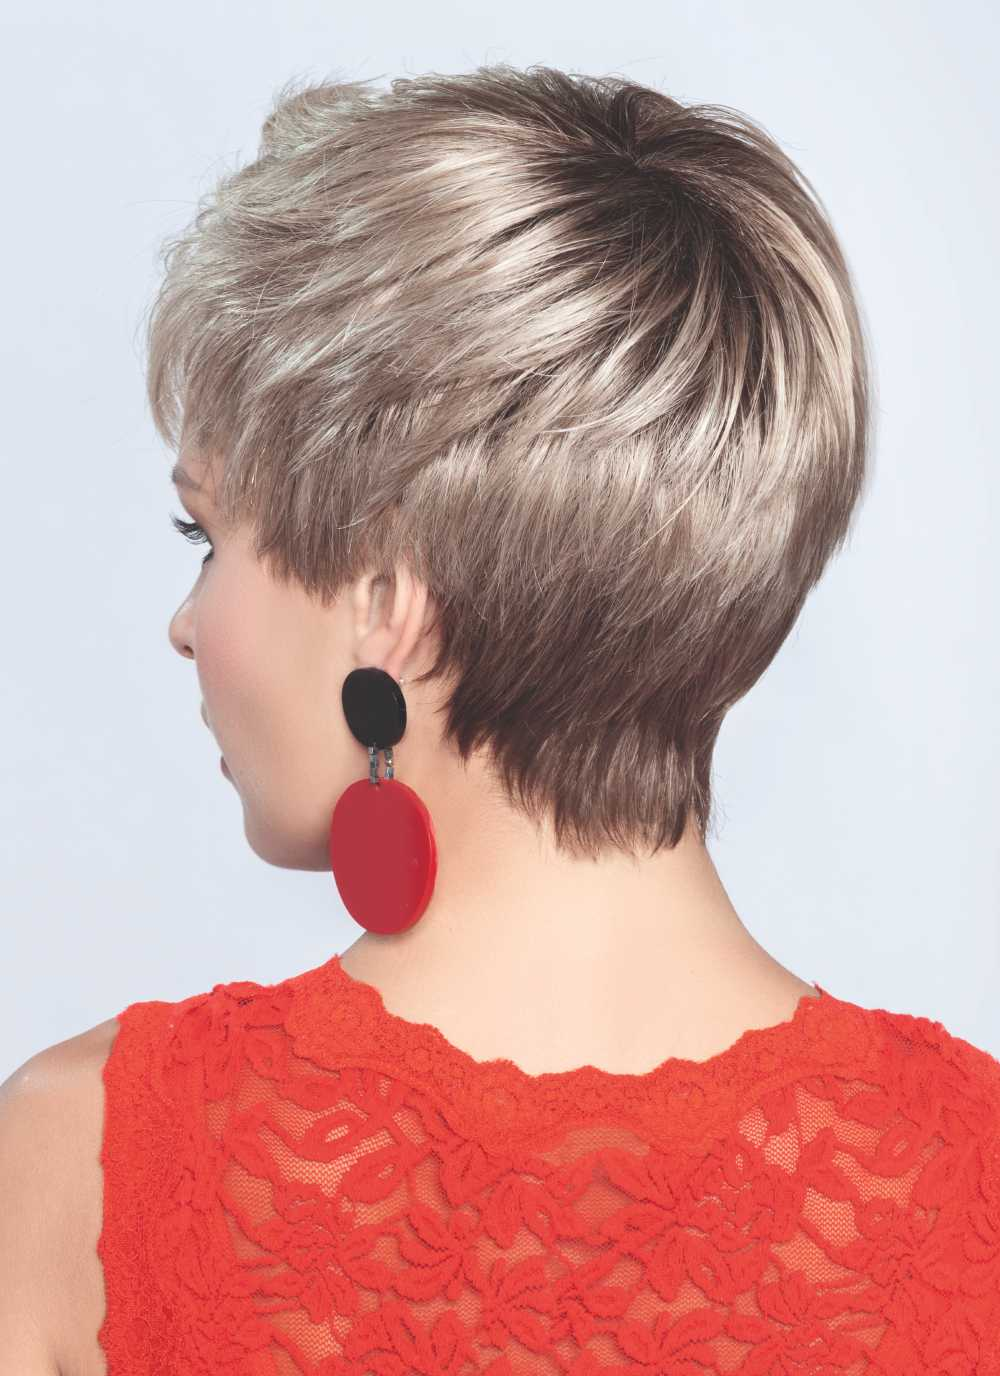 Point   Snugly fit into your neckline